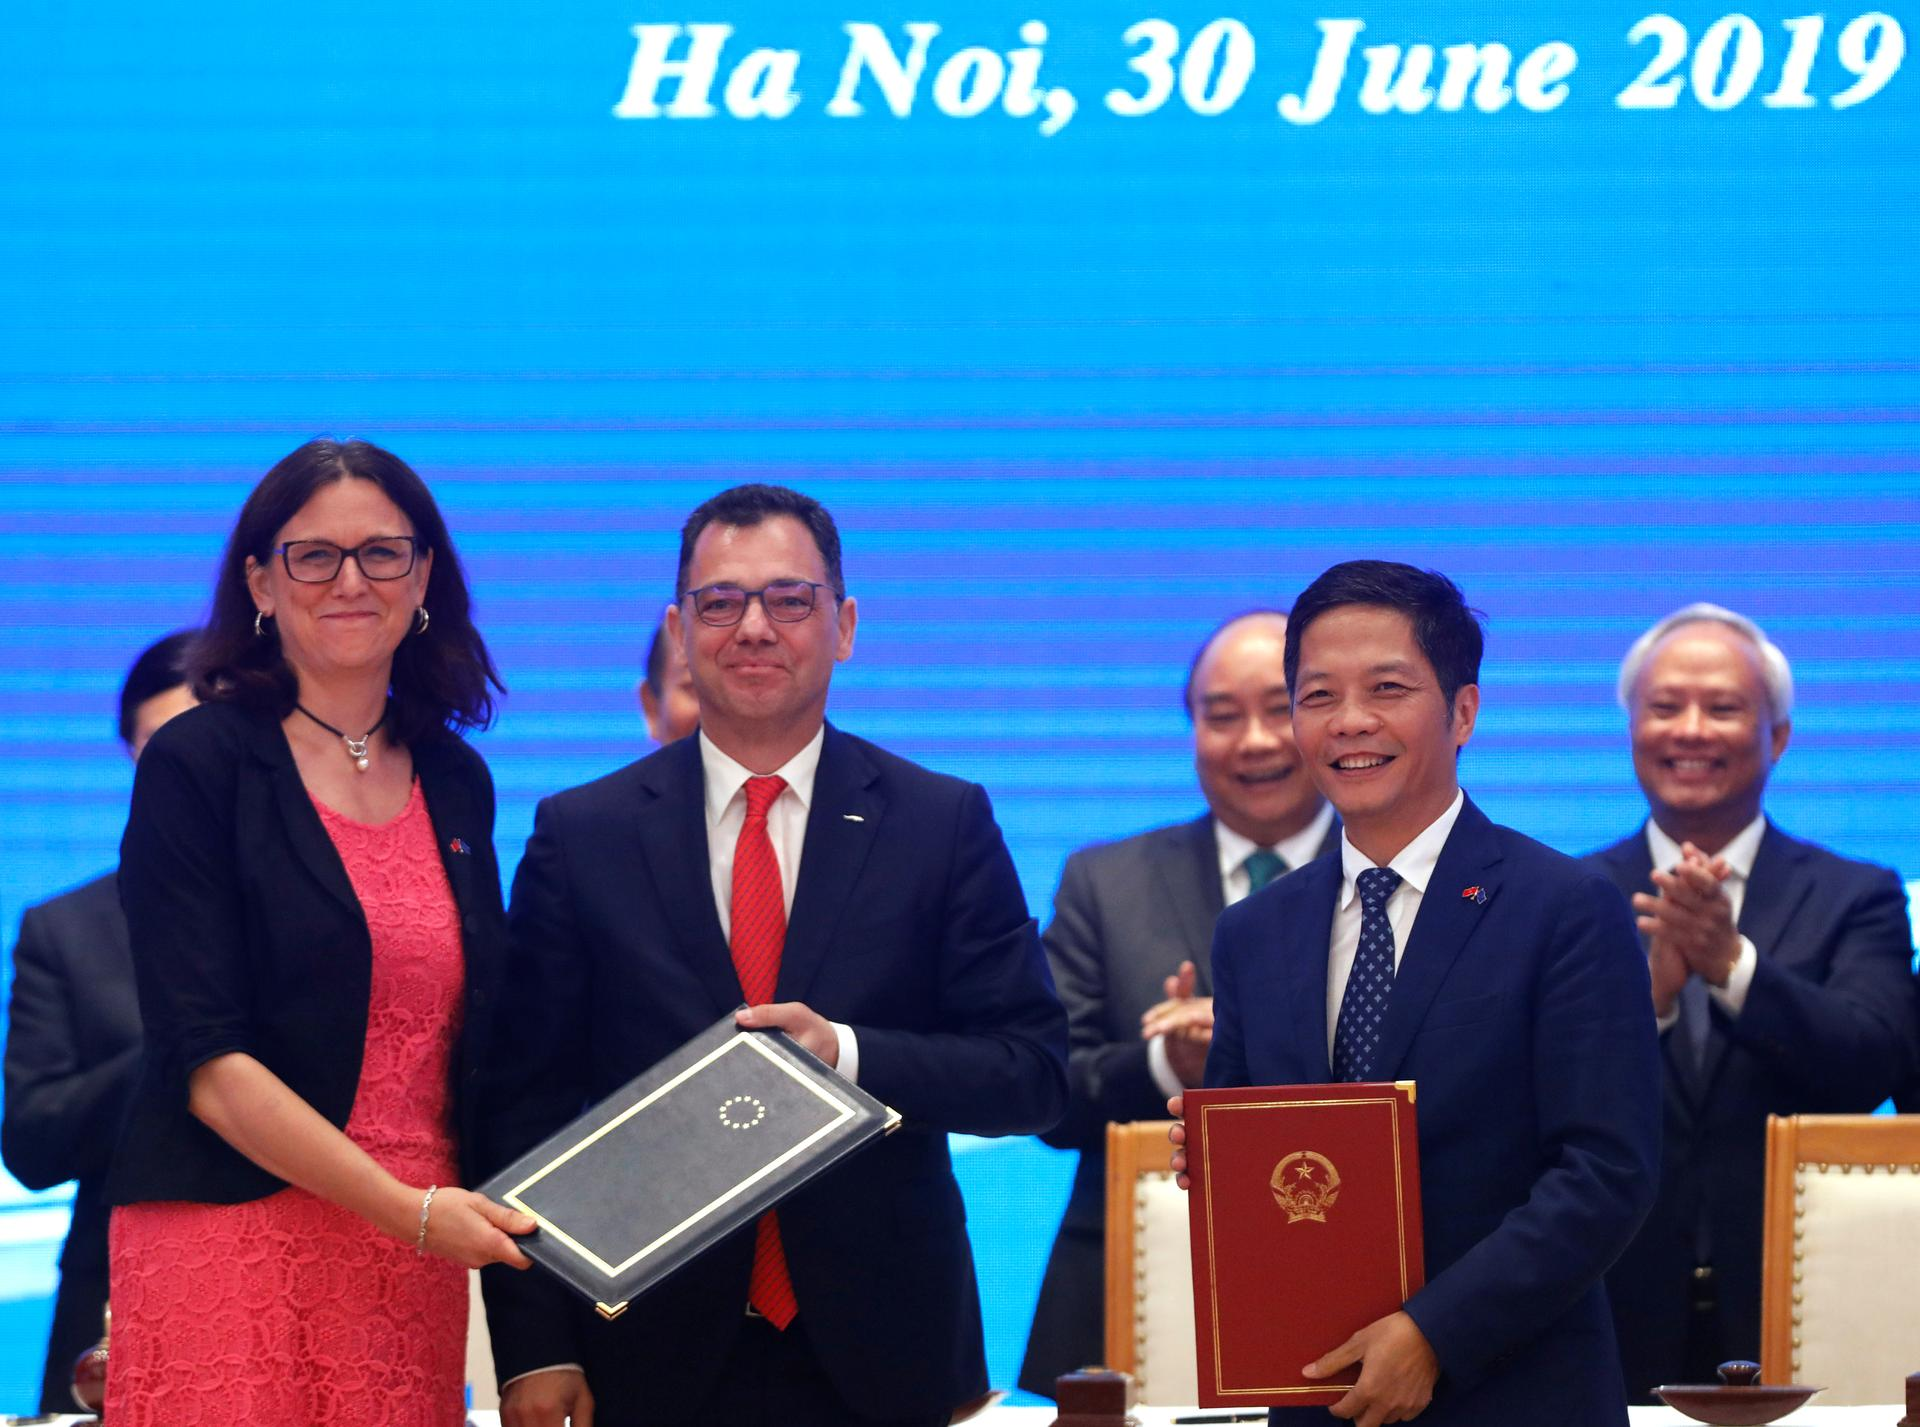 European Commissioner for Trade Cecilia Malmstrom, Romania's Business, Trade and Enterpreneurship Minister Stefan Radu Oprea and Vietnam's Industry and Trade Minister Tran Tuan Anh exchange documents while attending the signing ceremony of EU-Vietnam Free Trade Agreement at the Government Office in Hanoi, Vietnam June 30, 2019. Photo: Reuters